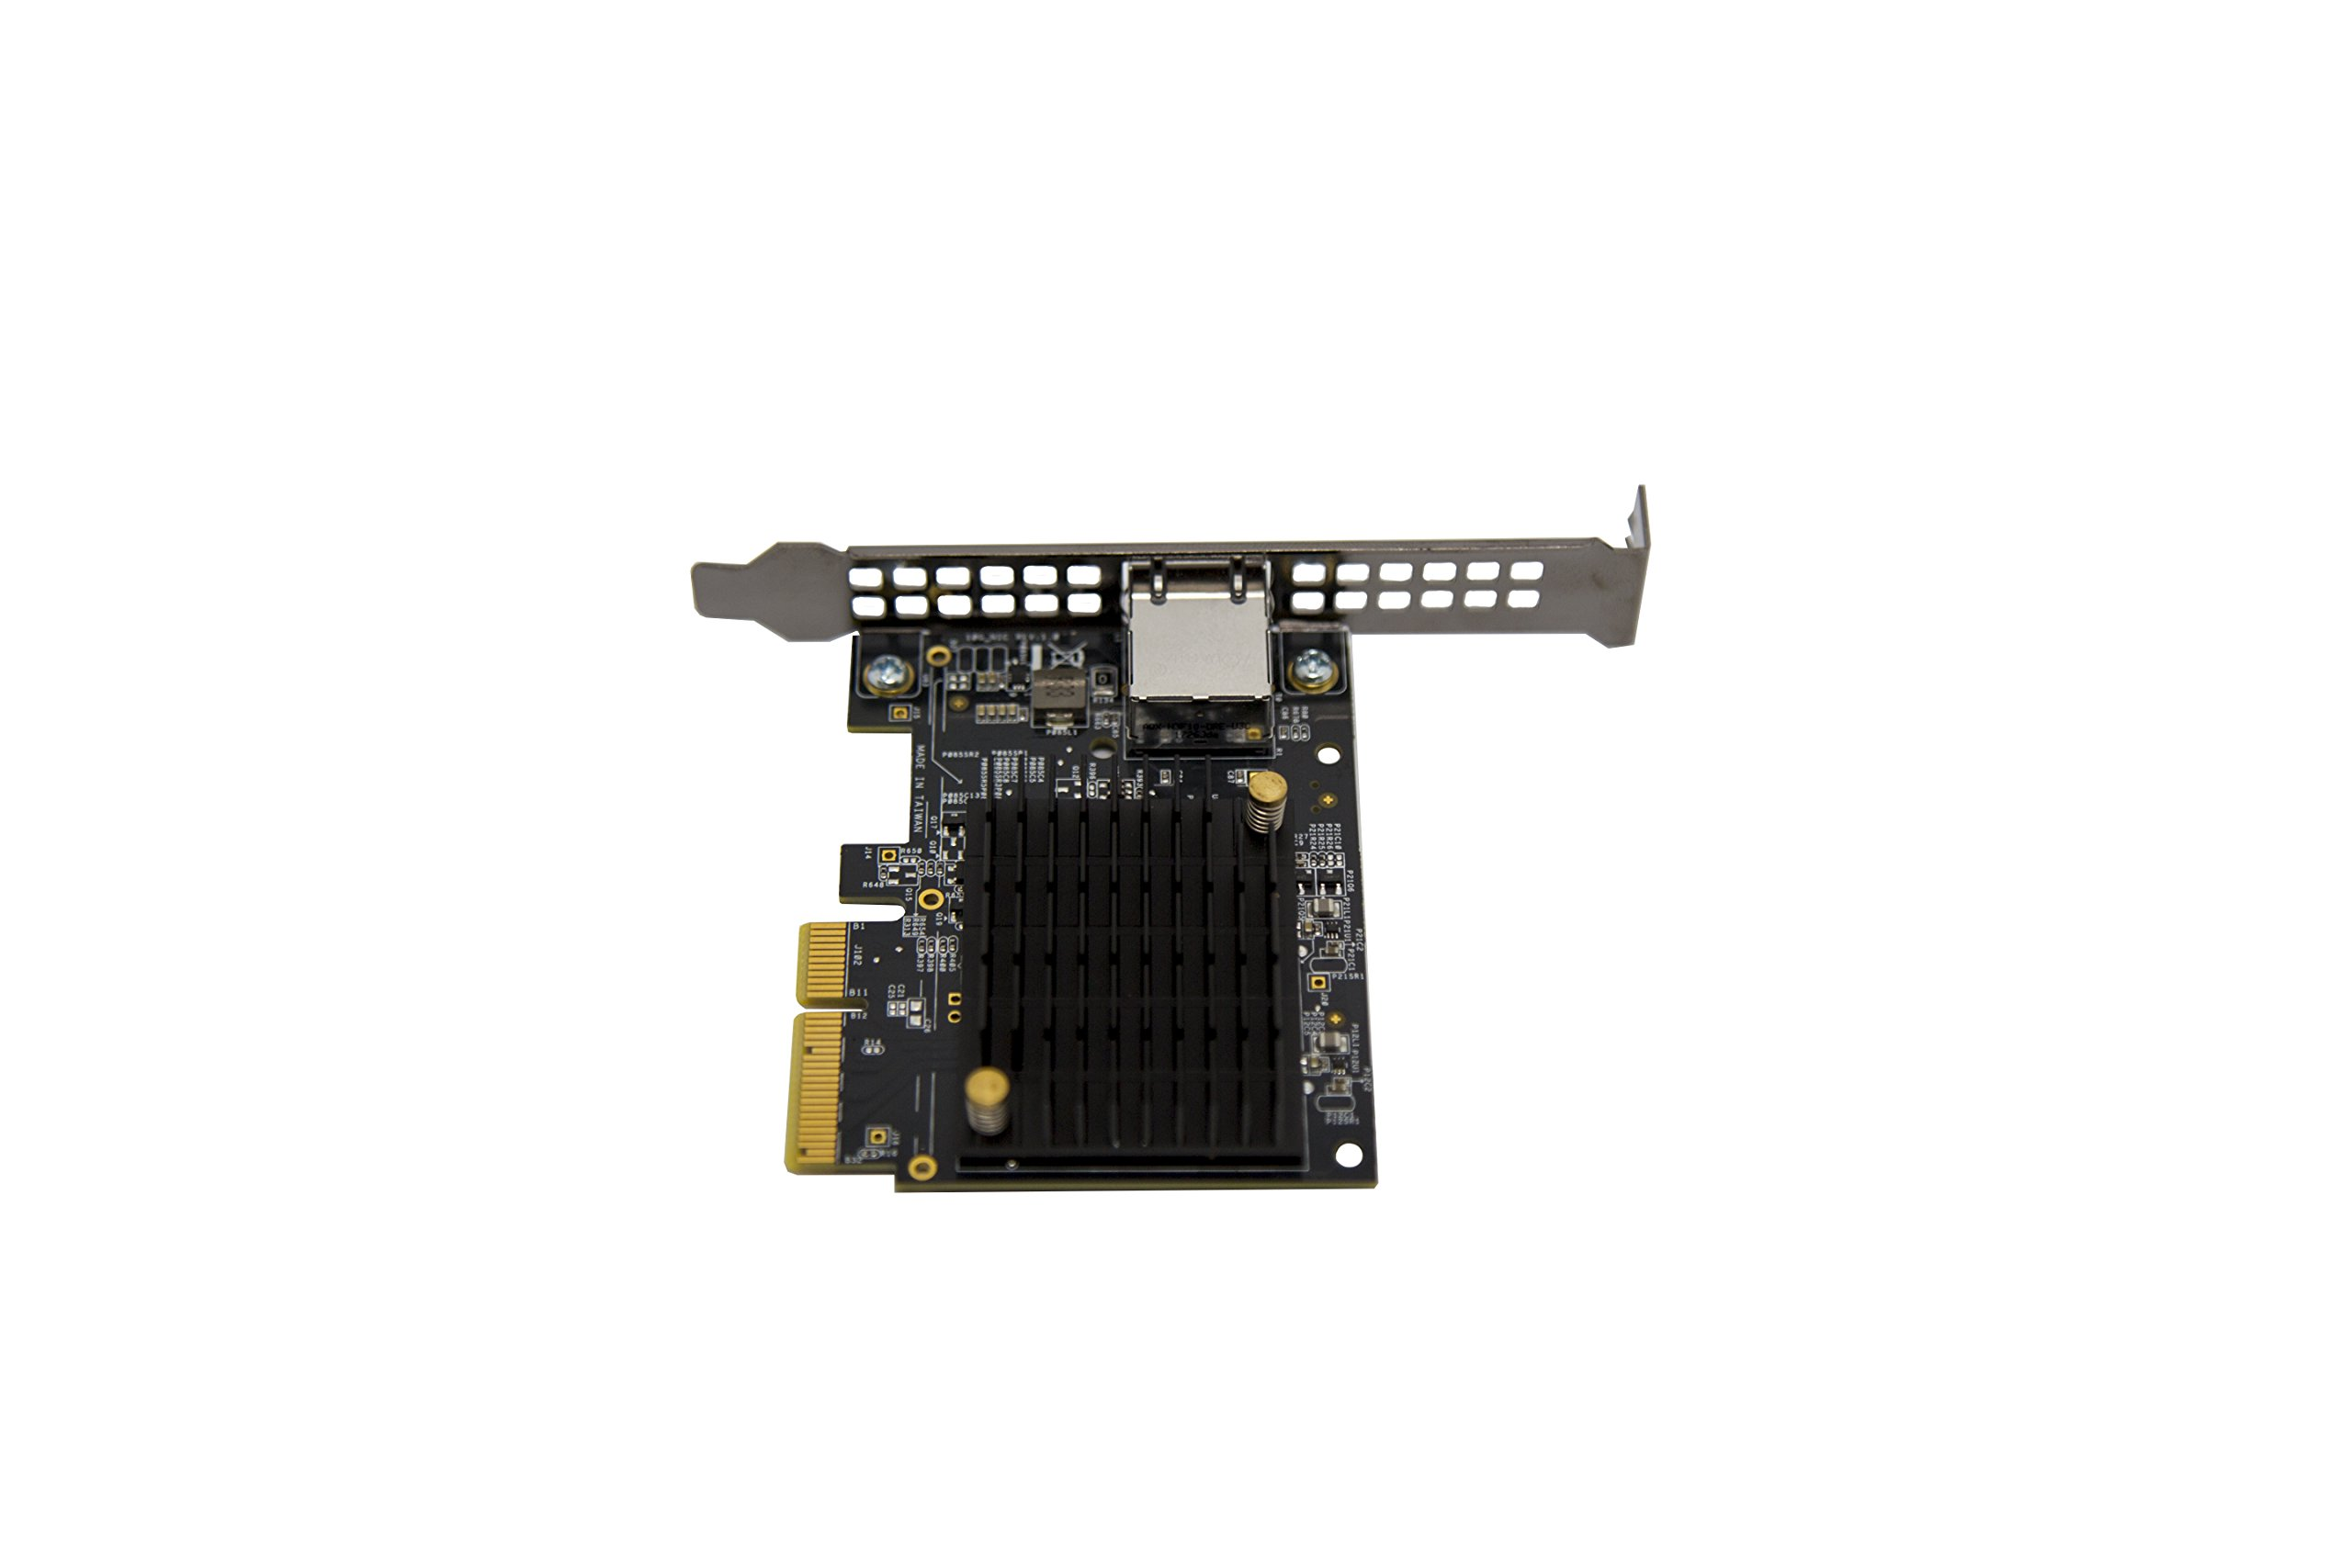 Aquantia AQtion 10G Gaming NIC, 5-Speed Ethernet Network Adapter with PCIe 3.0 and RJ-45 (AQN-107) by Aquantia